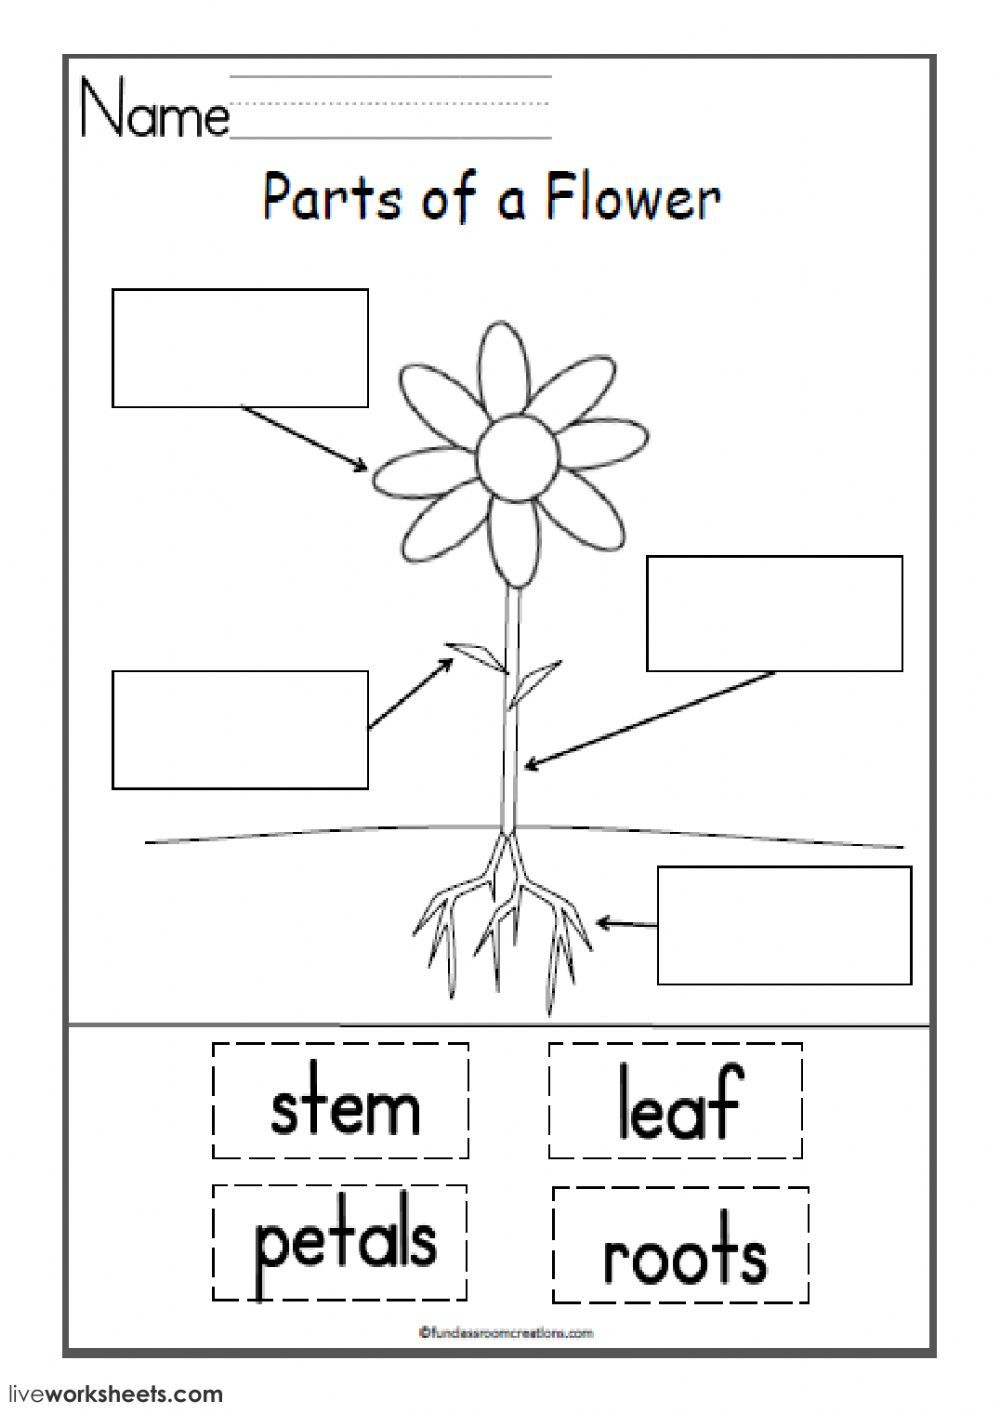 parts of the flower interactive and downloadable worksheet